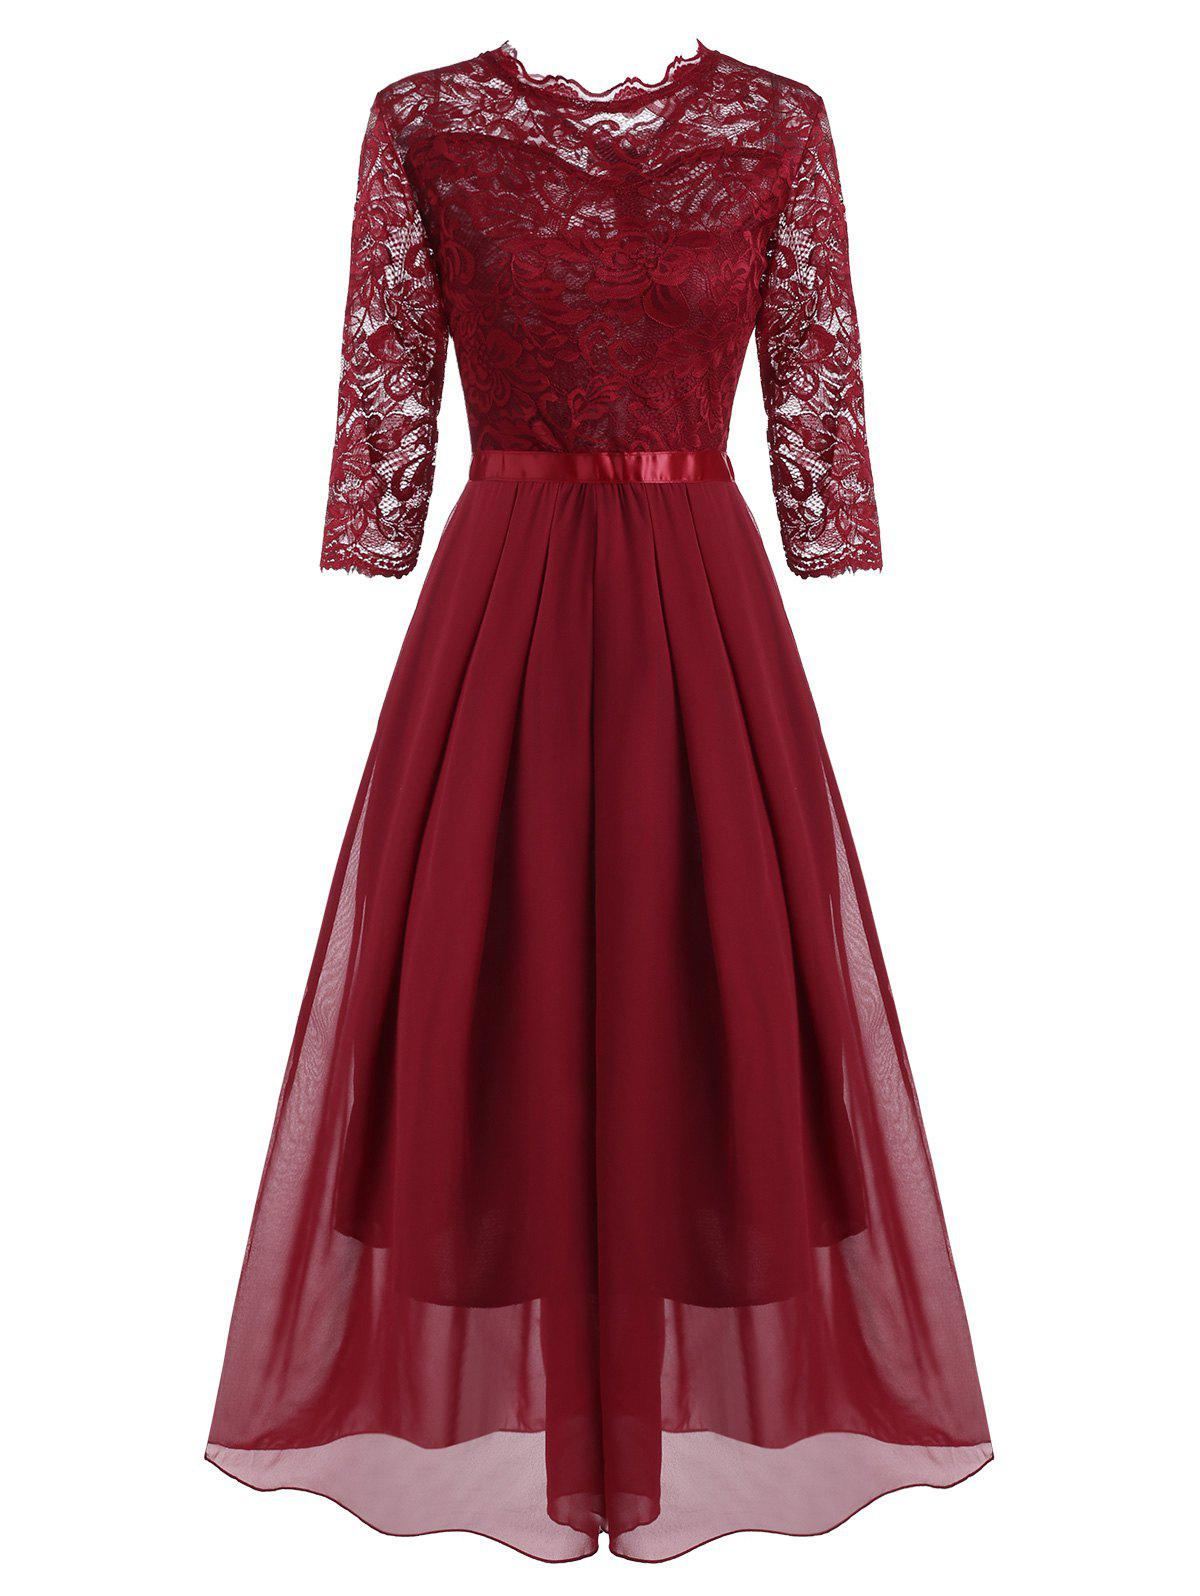 Pleated Detail Lace and Chiffon Floor Length Dress - RED 2XL